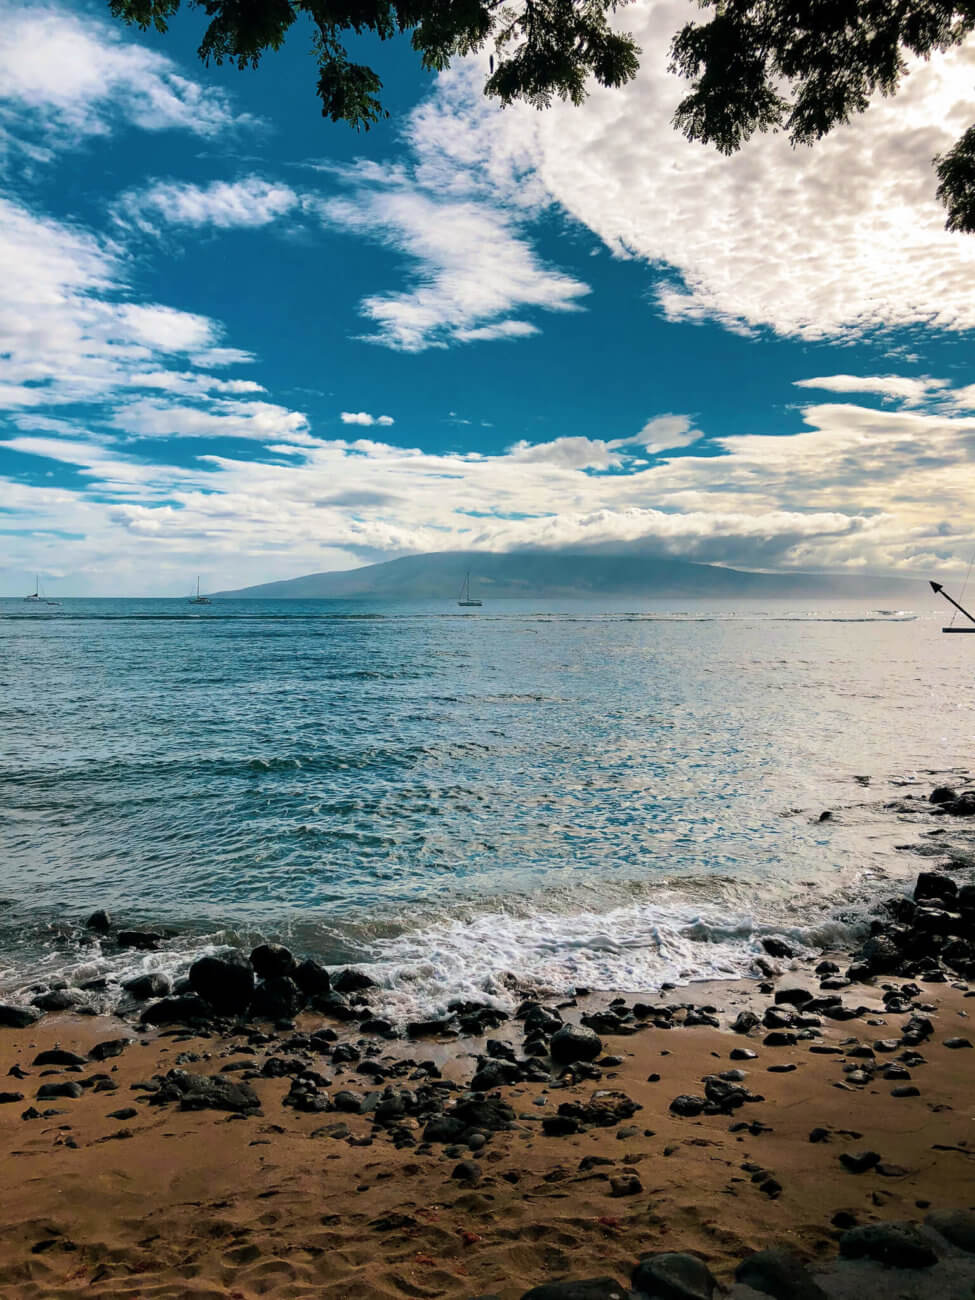 What it was like to explore Lahaina, Maui including shopping, things to do, best places to eat, and even a little trip on a submarine... #lahaina #maui #hawaii #hawaiitrip Lahaina Maui | Hawaii Travel | Maui Hawaii | Hawaii Vacation | Hawaii Honeymoon | Things to do in Hawaii | Things to do in Maui | Things to do in Lahaina | Maui Vacation | Lahaina Maui restaurants | Lahaina Maui Activities | Lahaina Maui Shopping | Honeymoon Destination | Places to Honeymoon | Best Place to Honeymoon